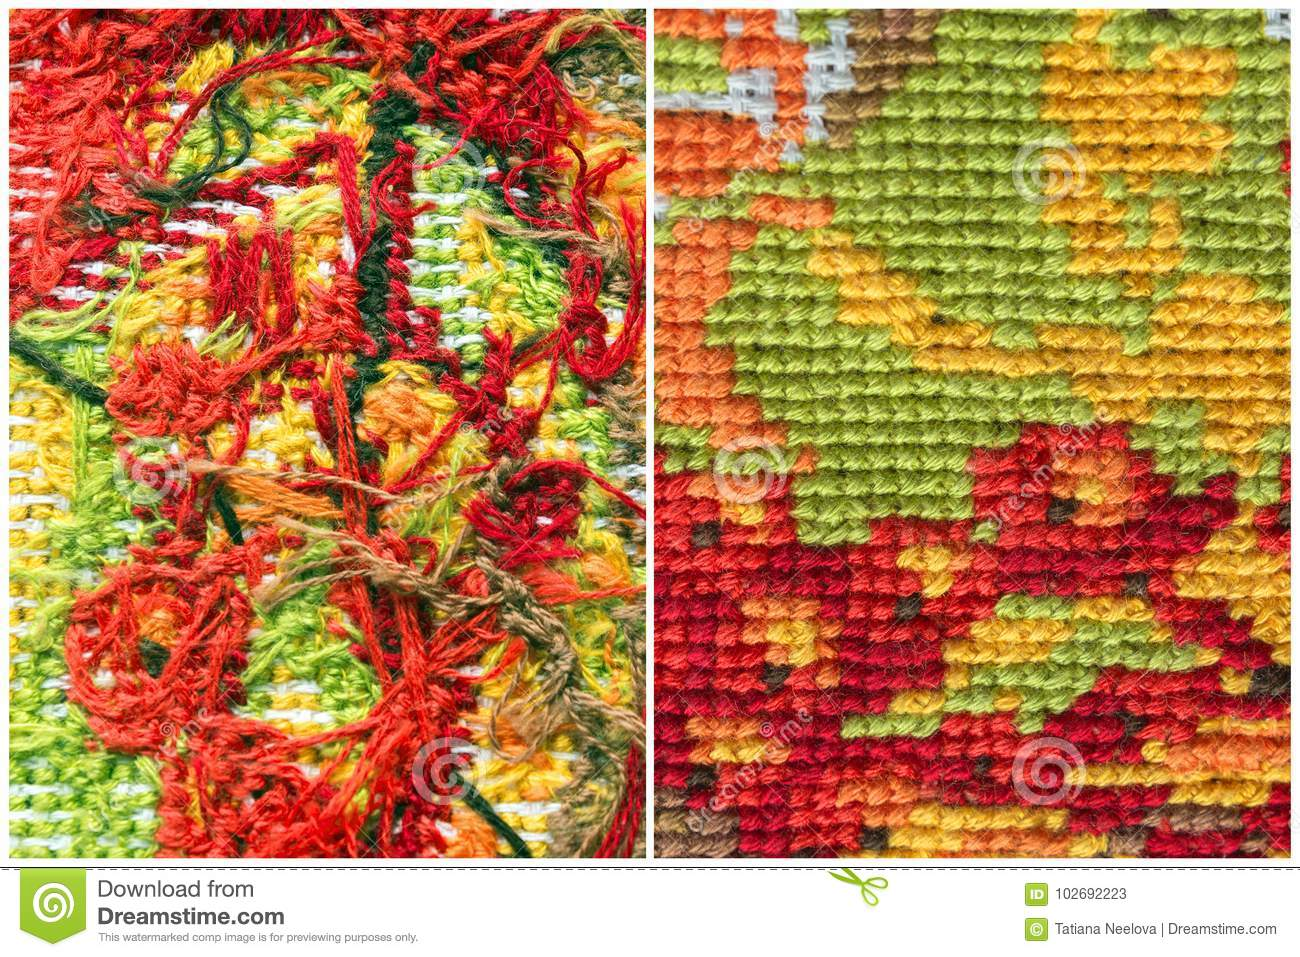 Embroidery, Handmade Needlework Stitches  The Photo Of The